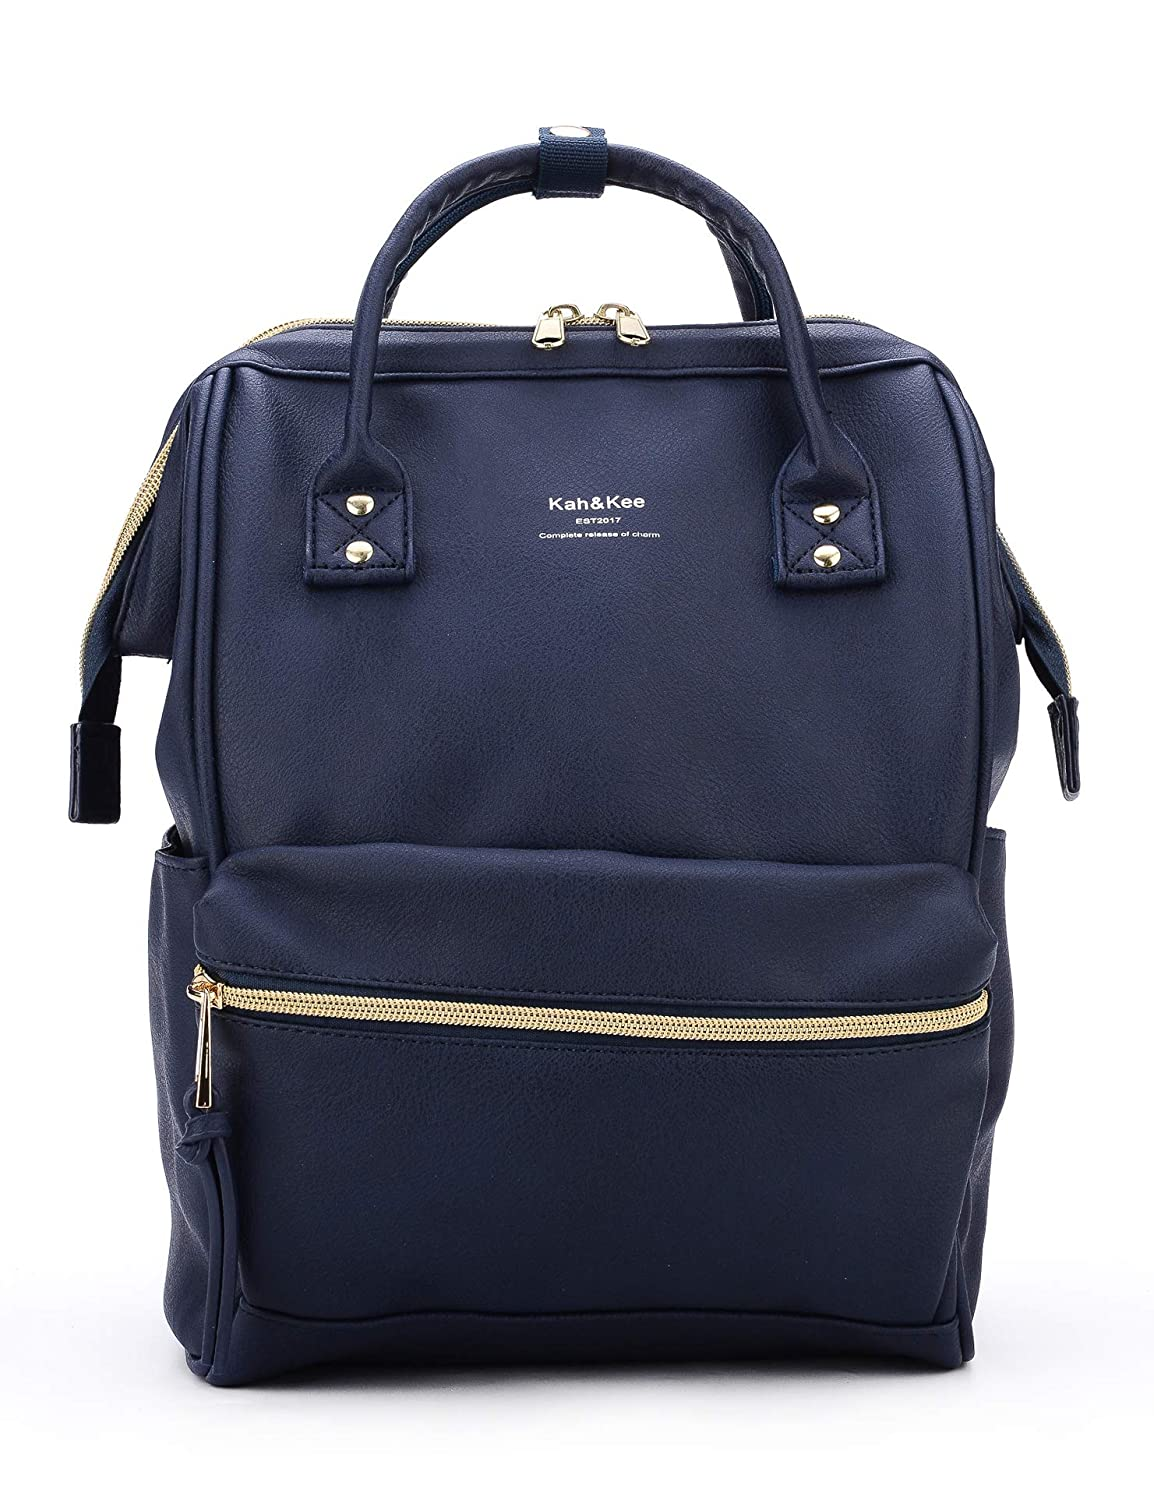 Navy Small Kah&Kee Leather Travel Notebook Backpack Laptop School Diaper Bag for Women Man Small (Navy)